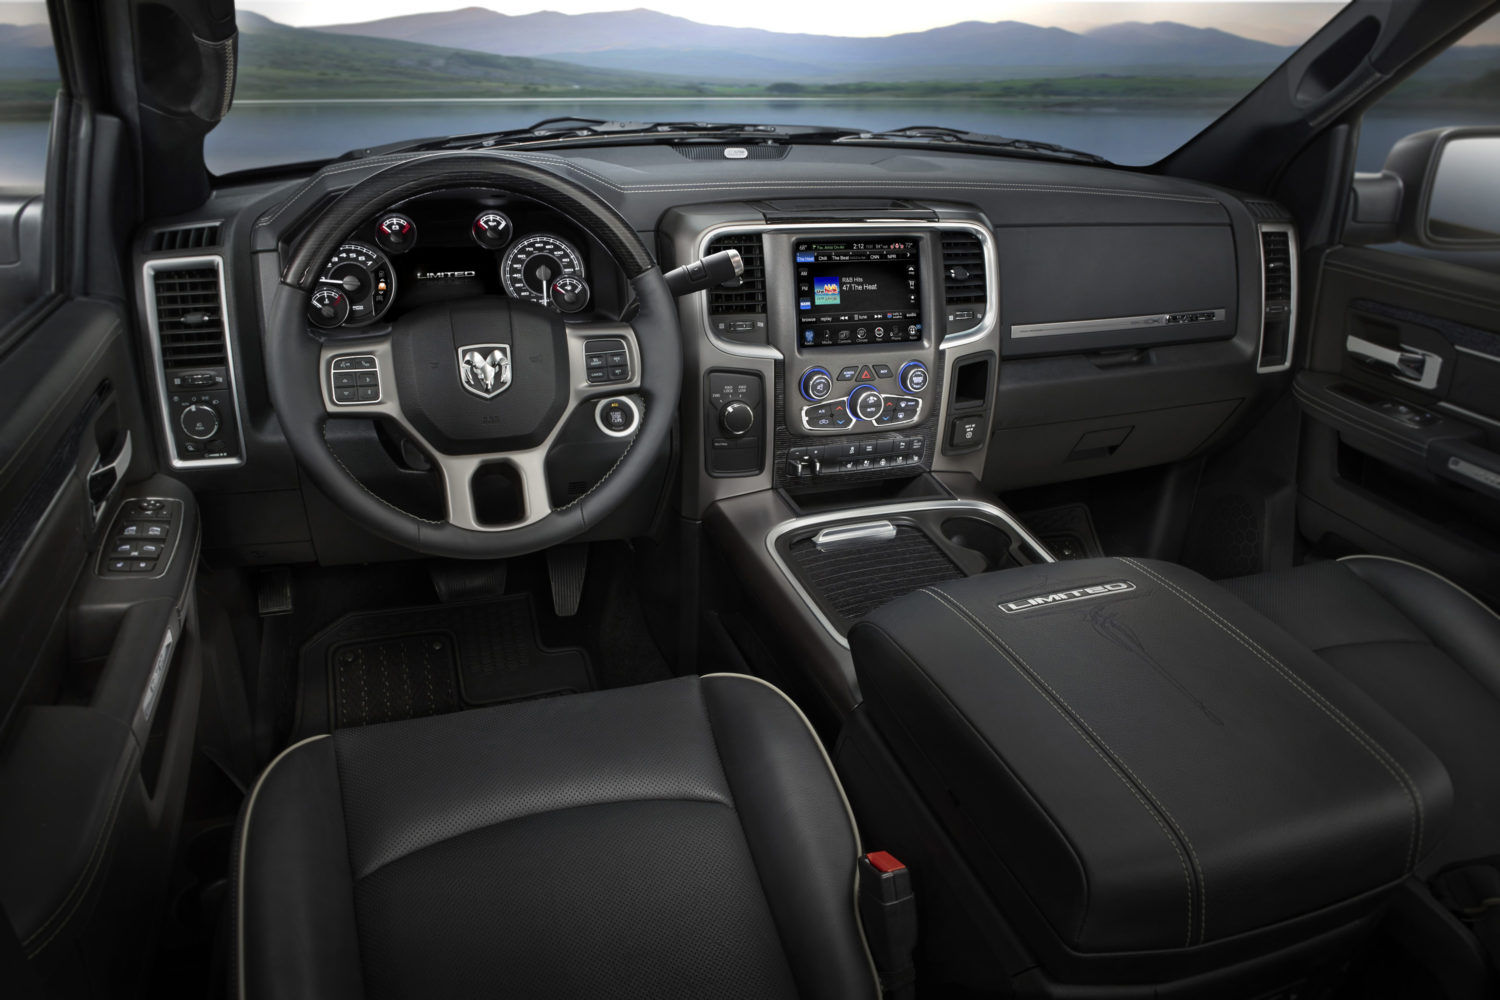 2017 Ram Heavy Duty Laramie Limited Interior